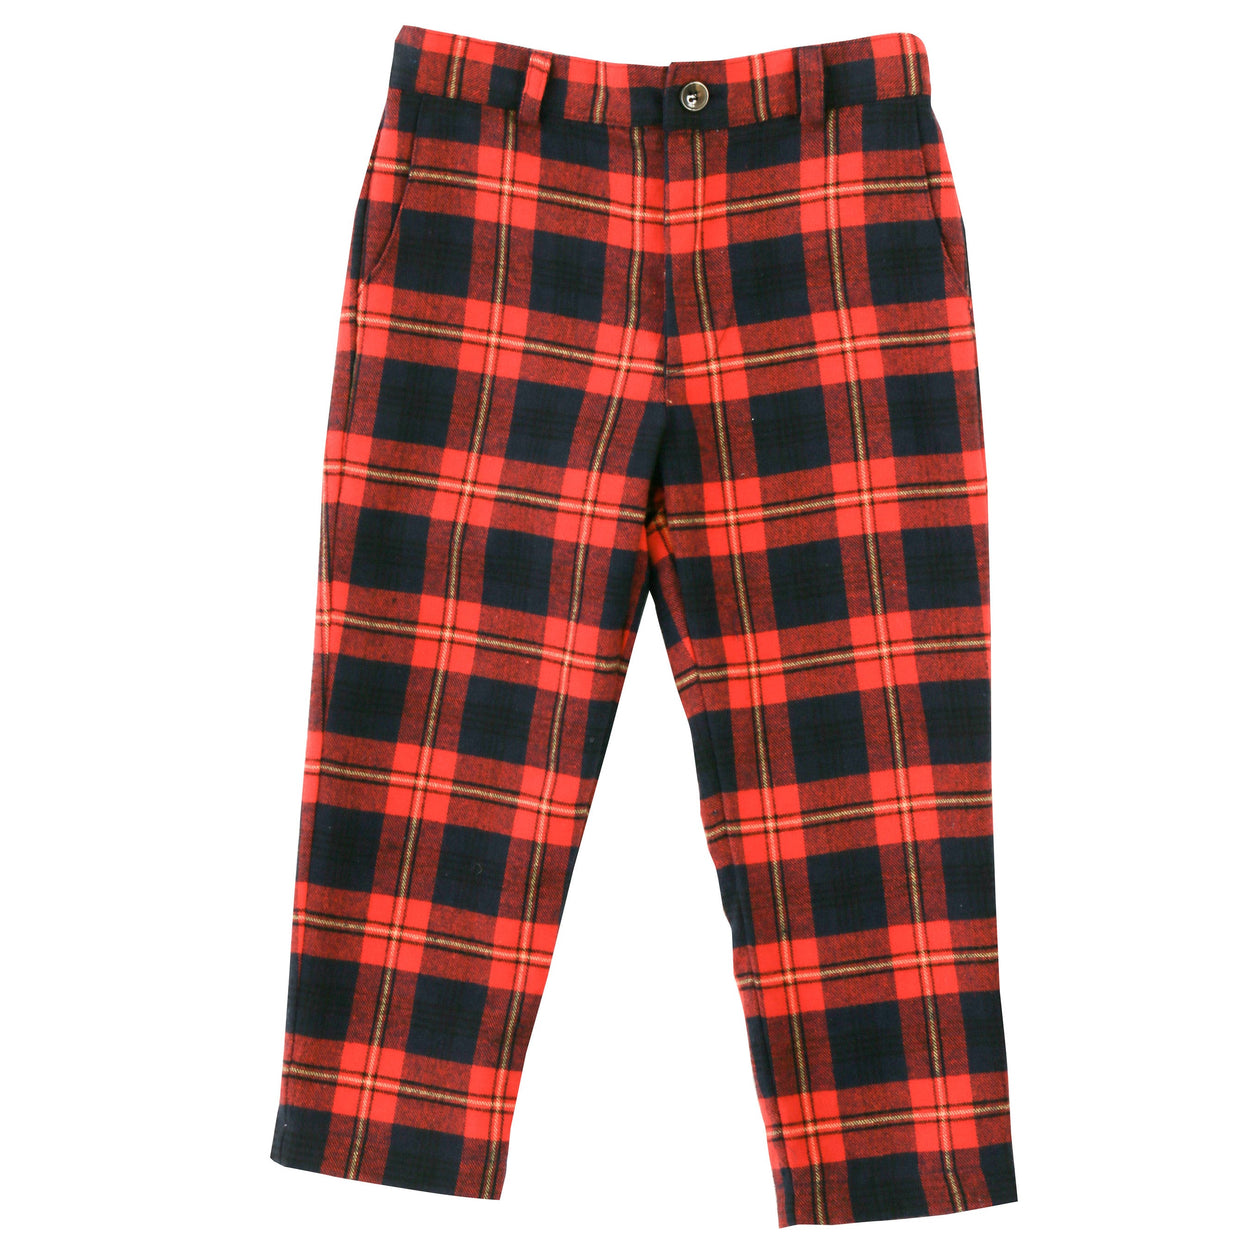 alex boys flat front pant red yellow plaid